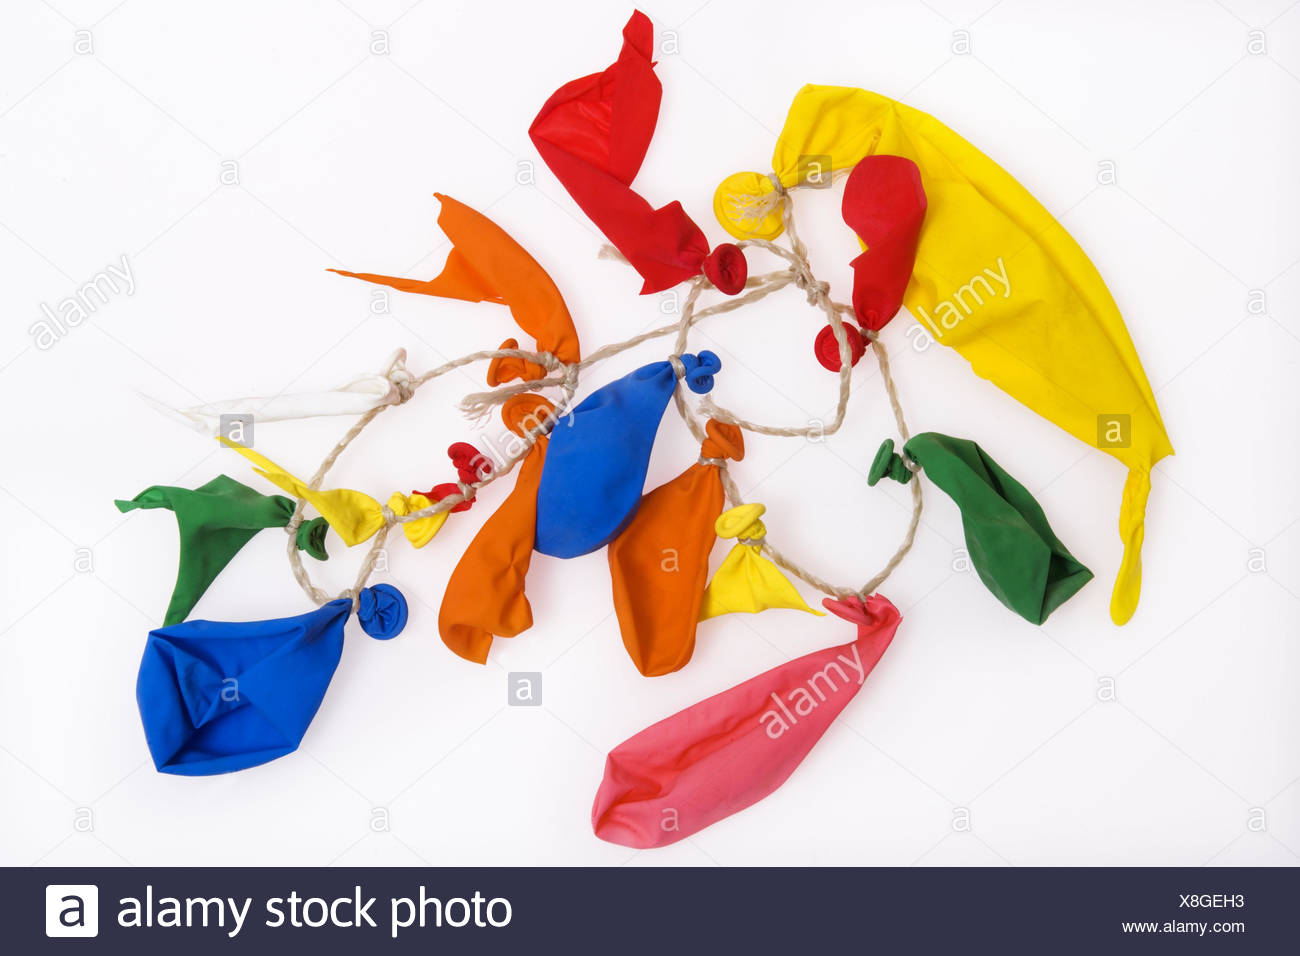 Balloons, bursts, cable, studio, cut out, burst, balloons, play, colours, brightly, broken, children's birthday party, childhood, transitoriness, destruction, different ones, - Stock Image